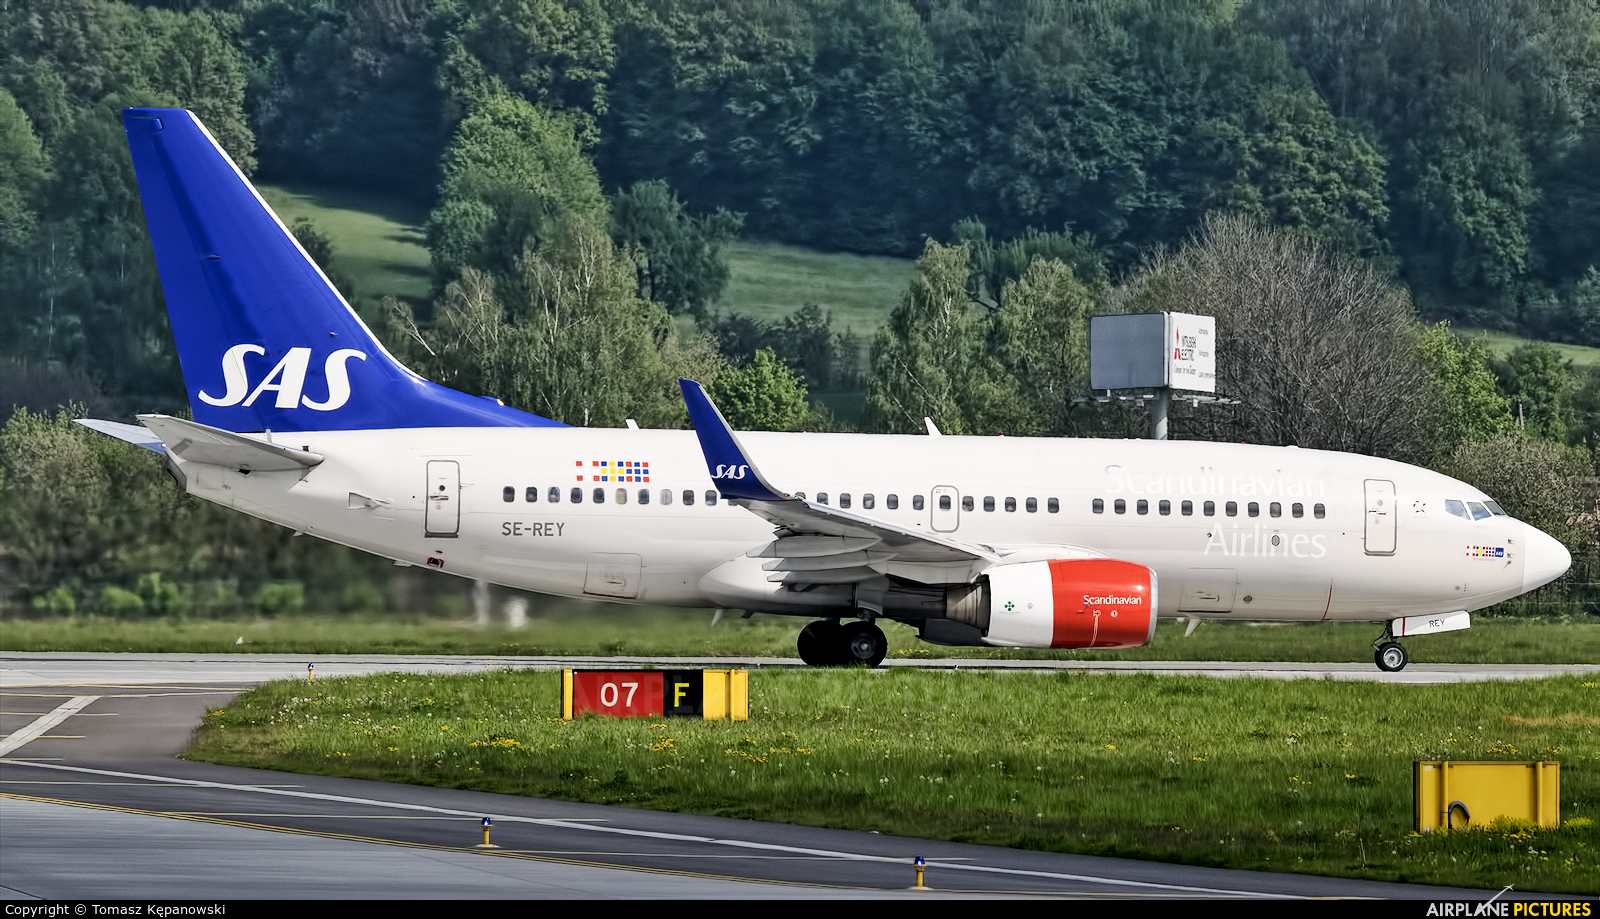 SAS - Scandinavian Airlines SE-REY aircraft at Kraków - John Paul II Intl